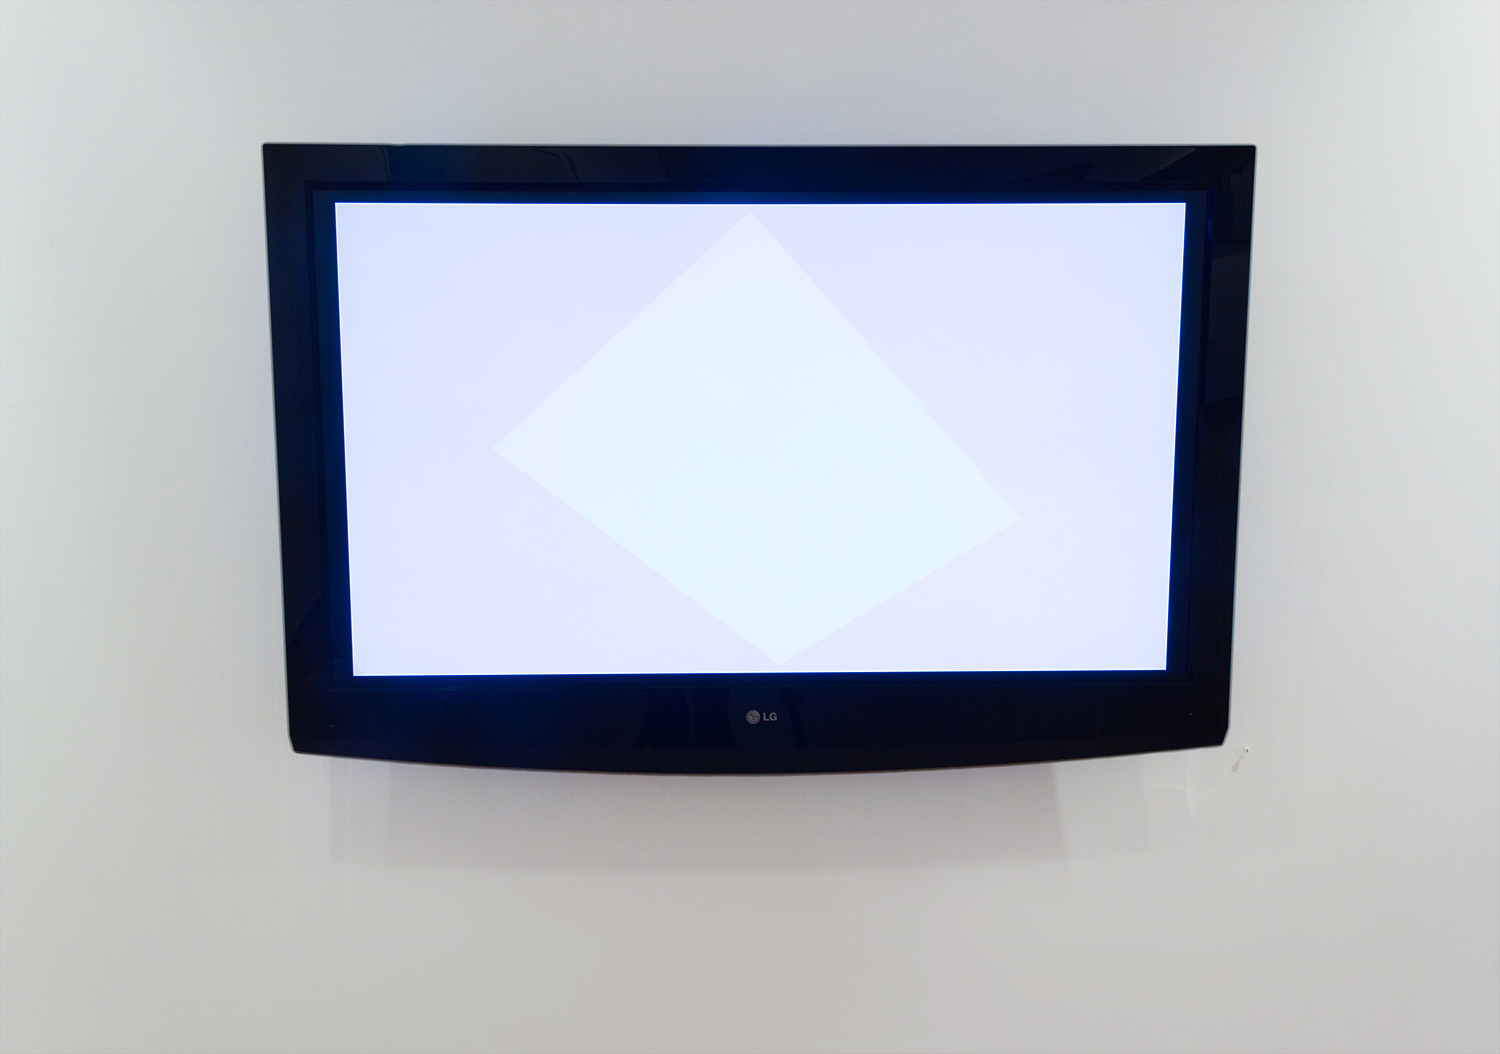 Installation View, Rhombus, 2012, HD Video Still